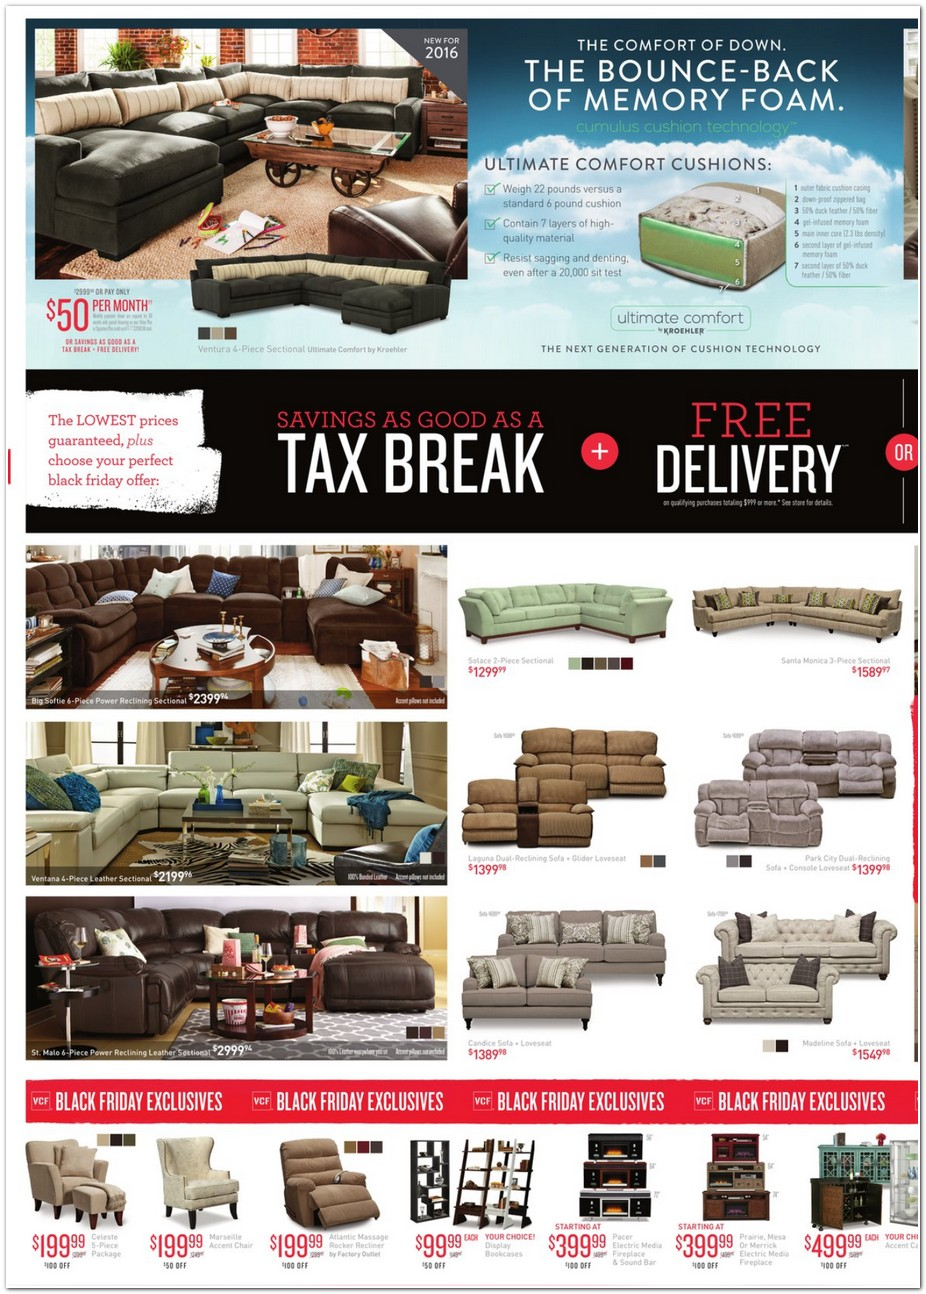 Value City Furniture 2015 Black Friday Ad Black Friday Archive